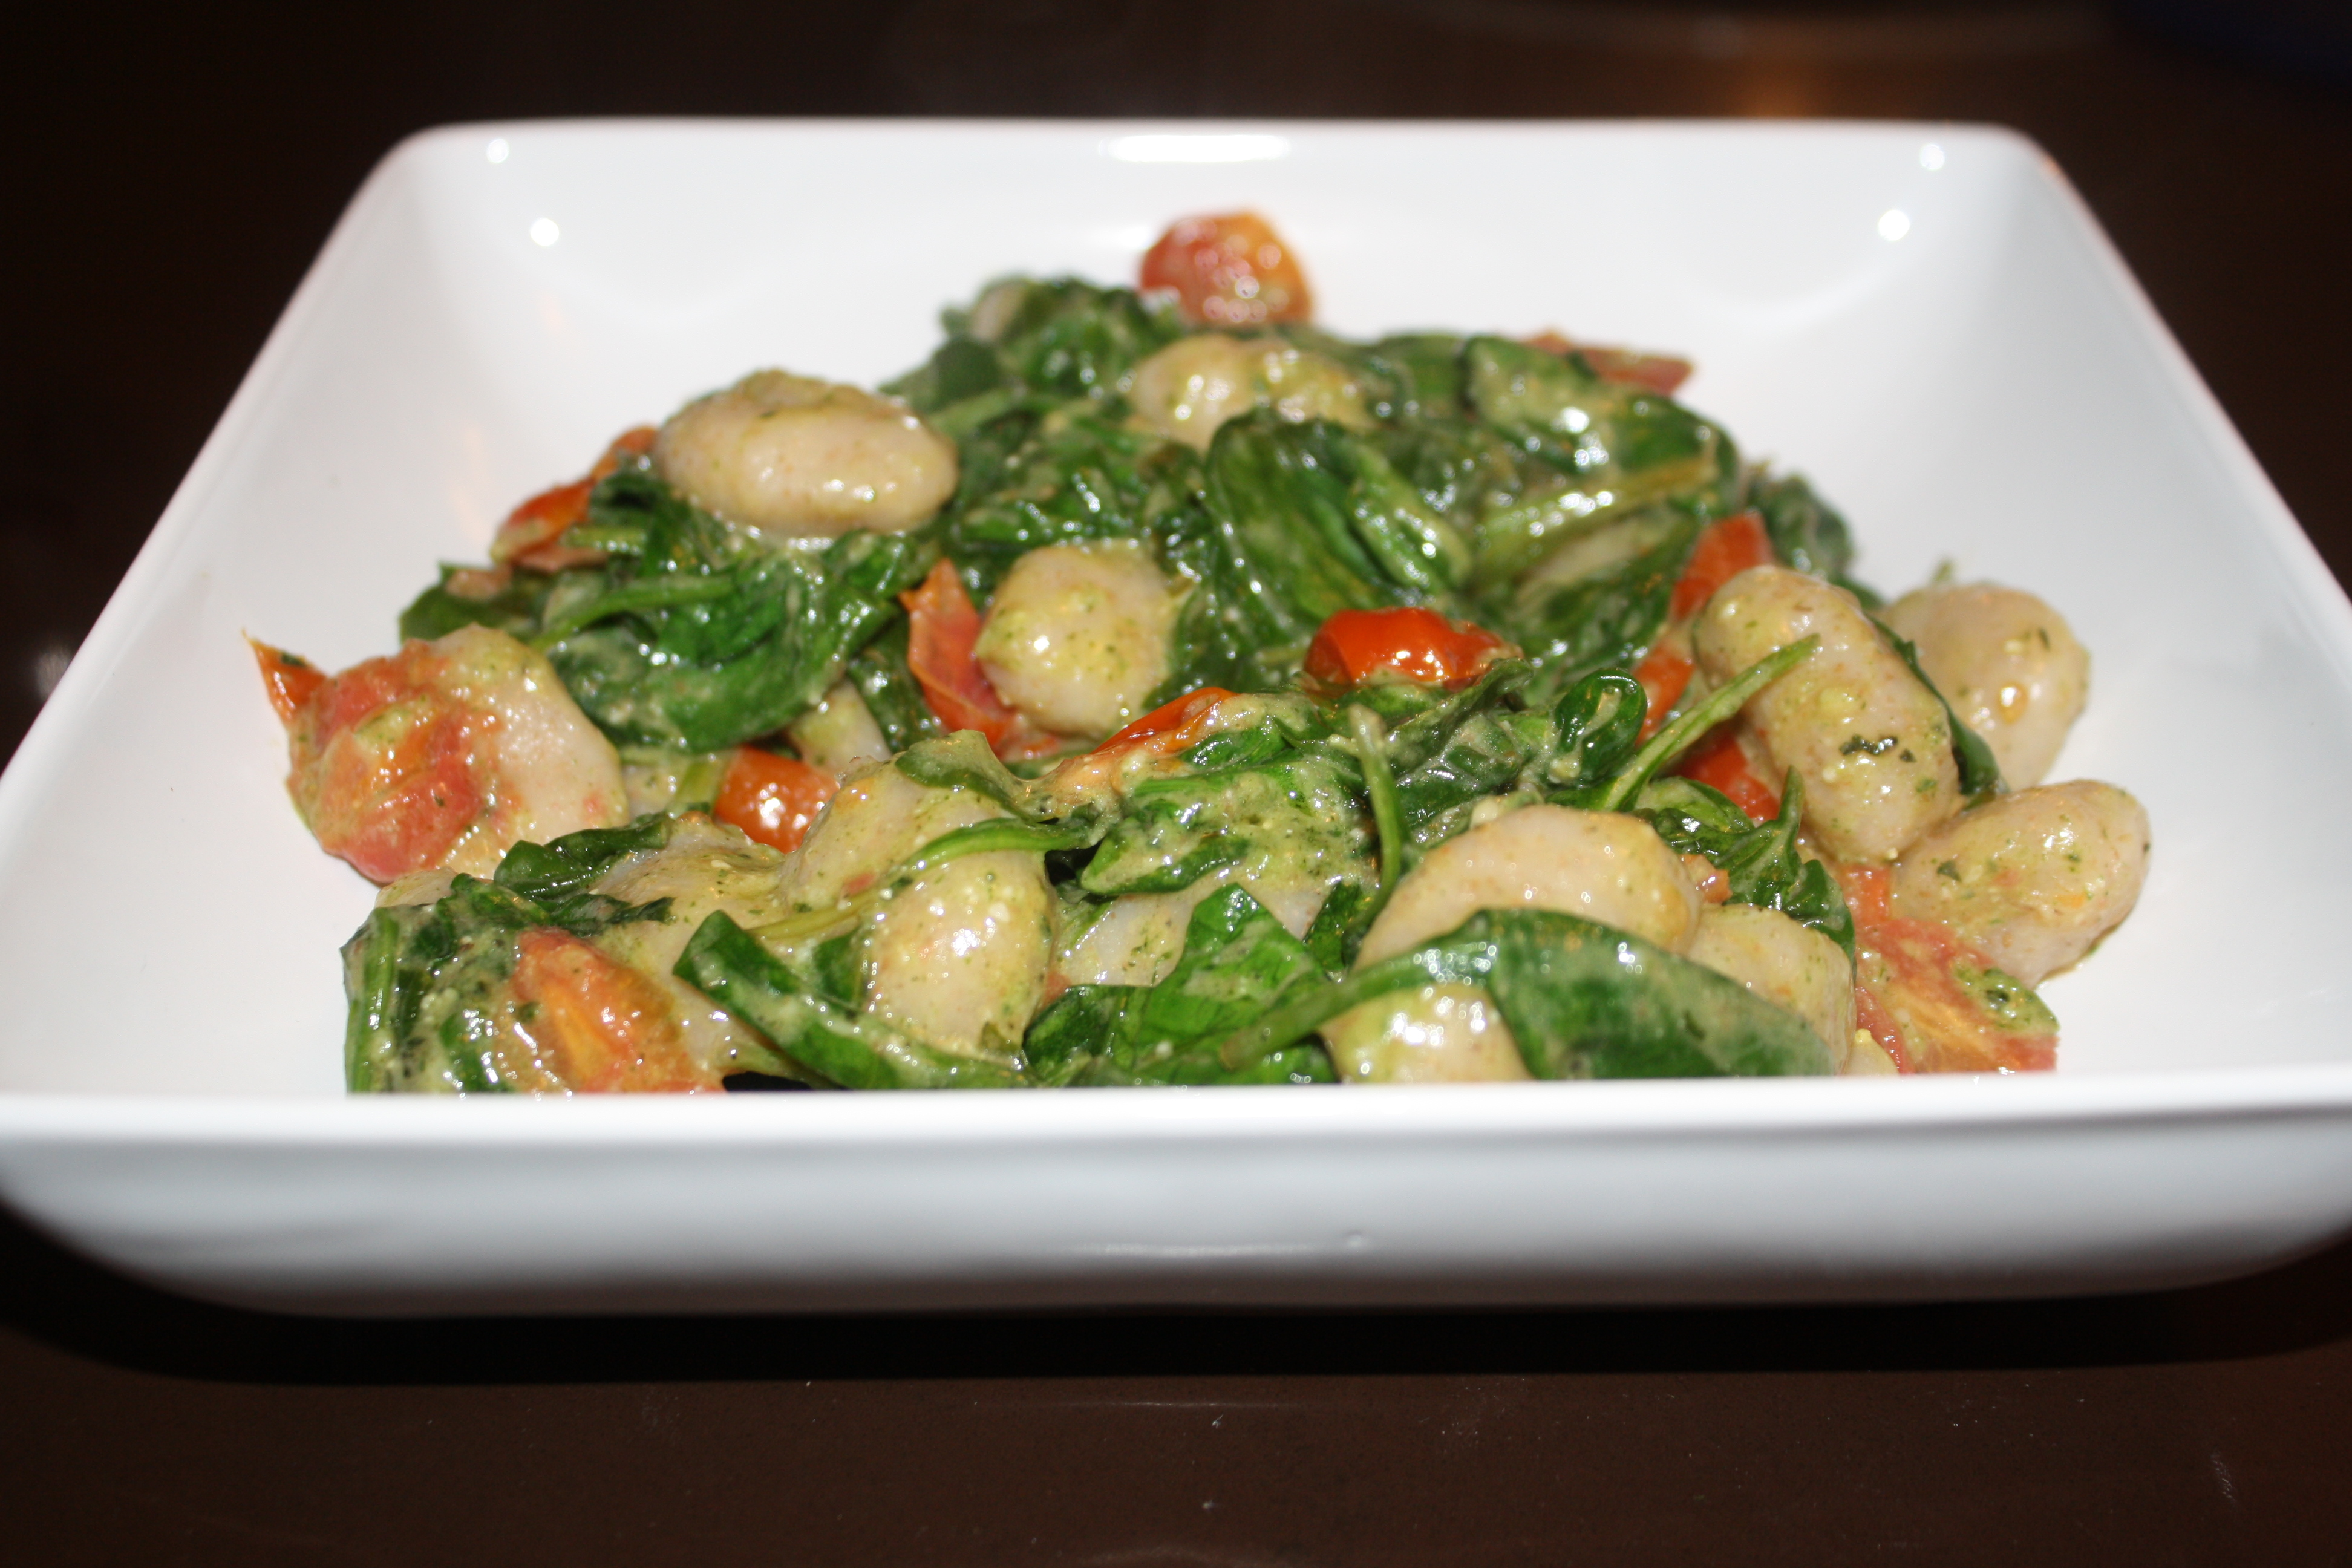 Gnocchi, Spinach and Tomatoes with Pesto Sauce